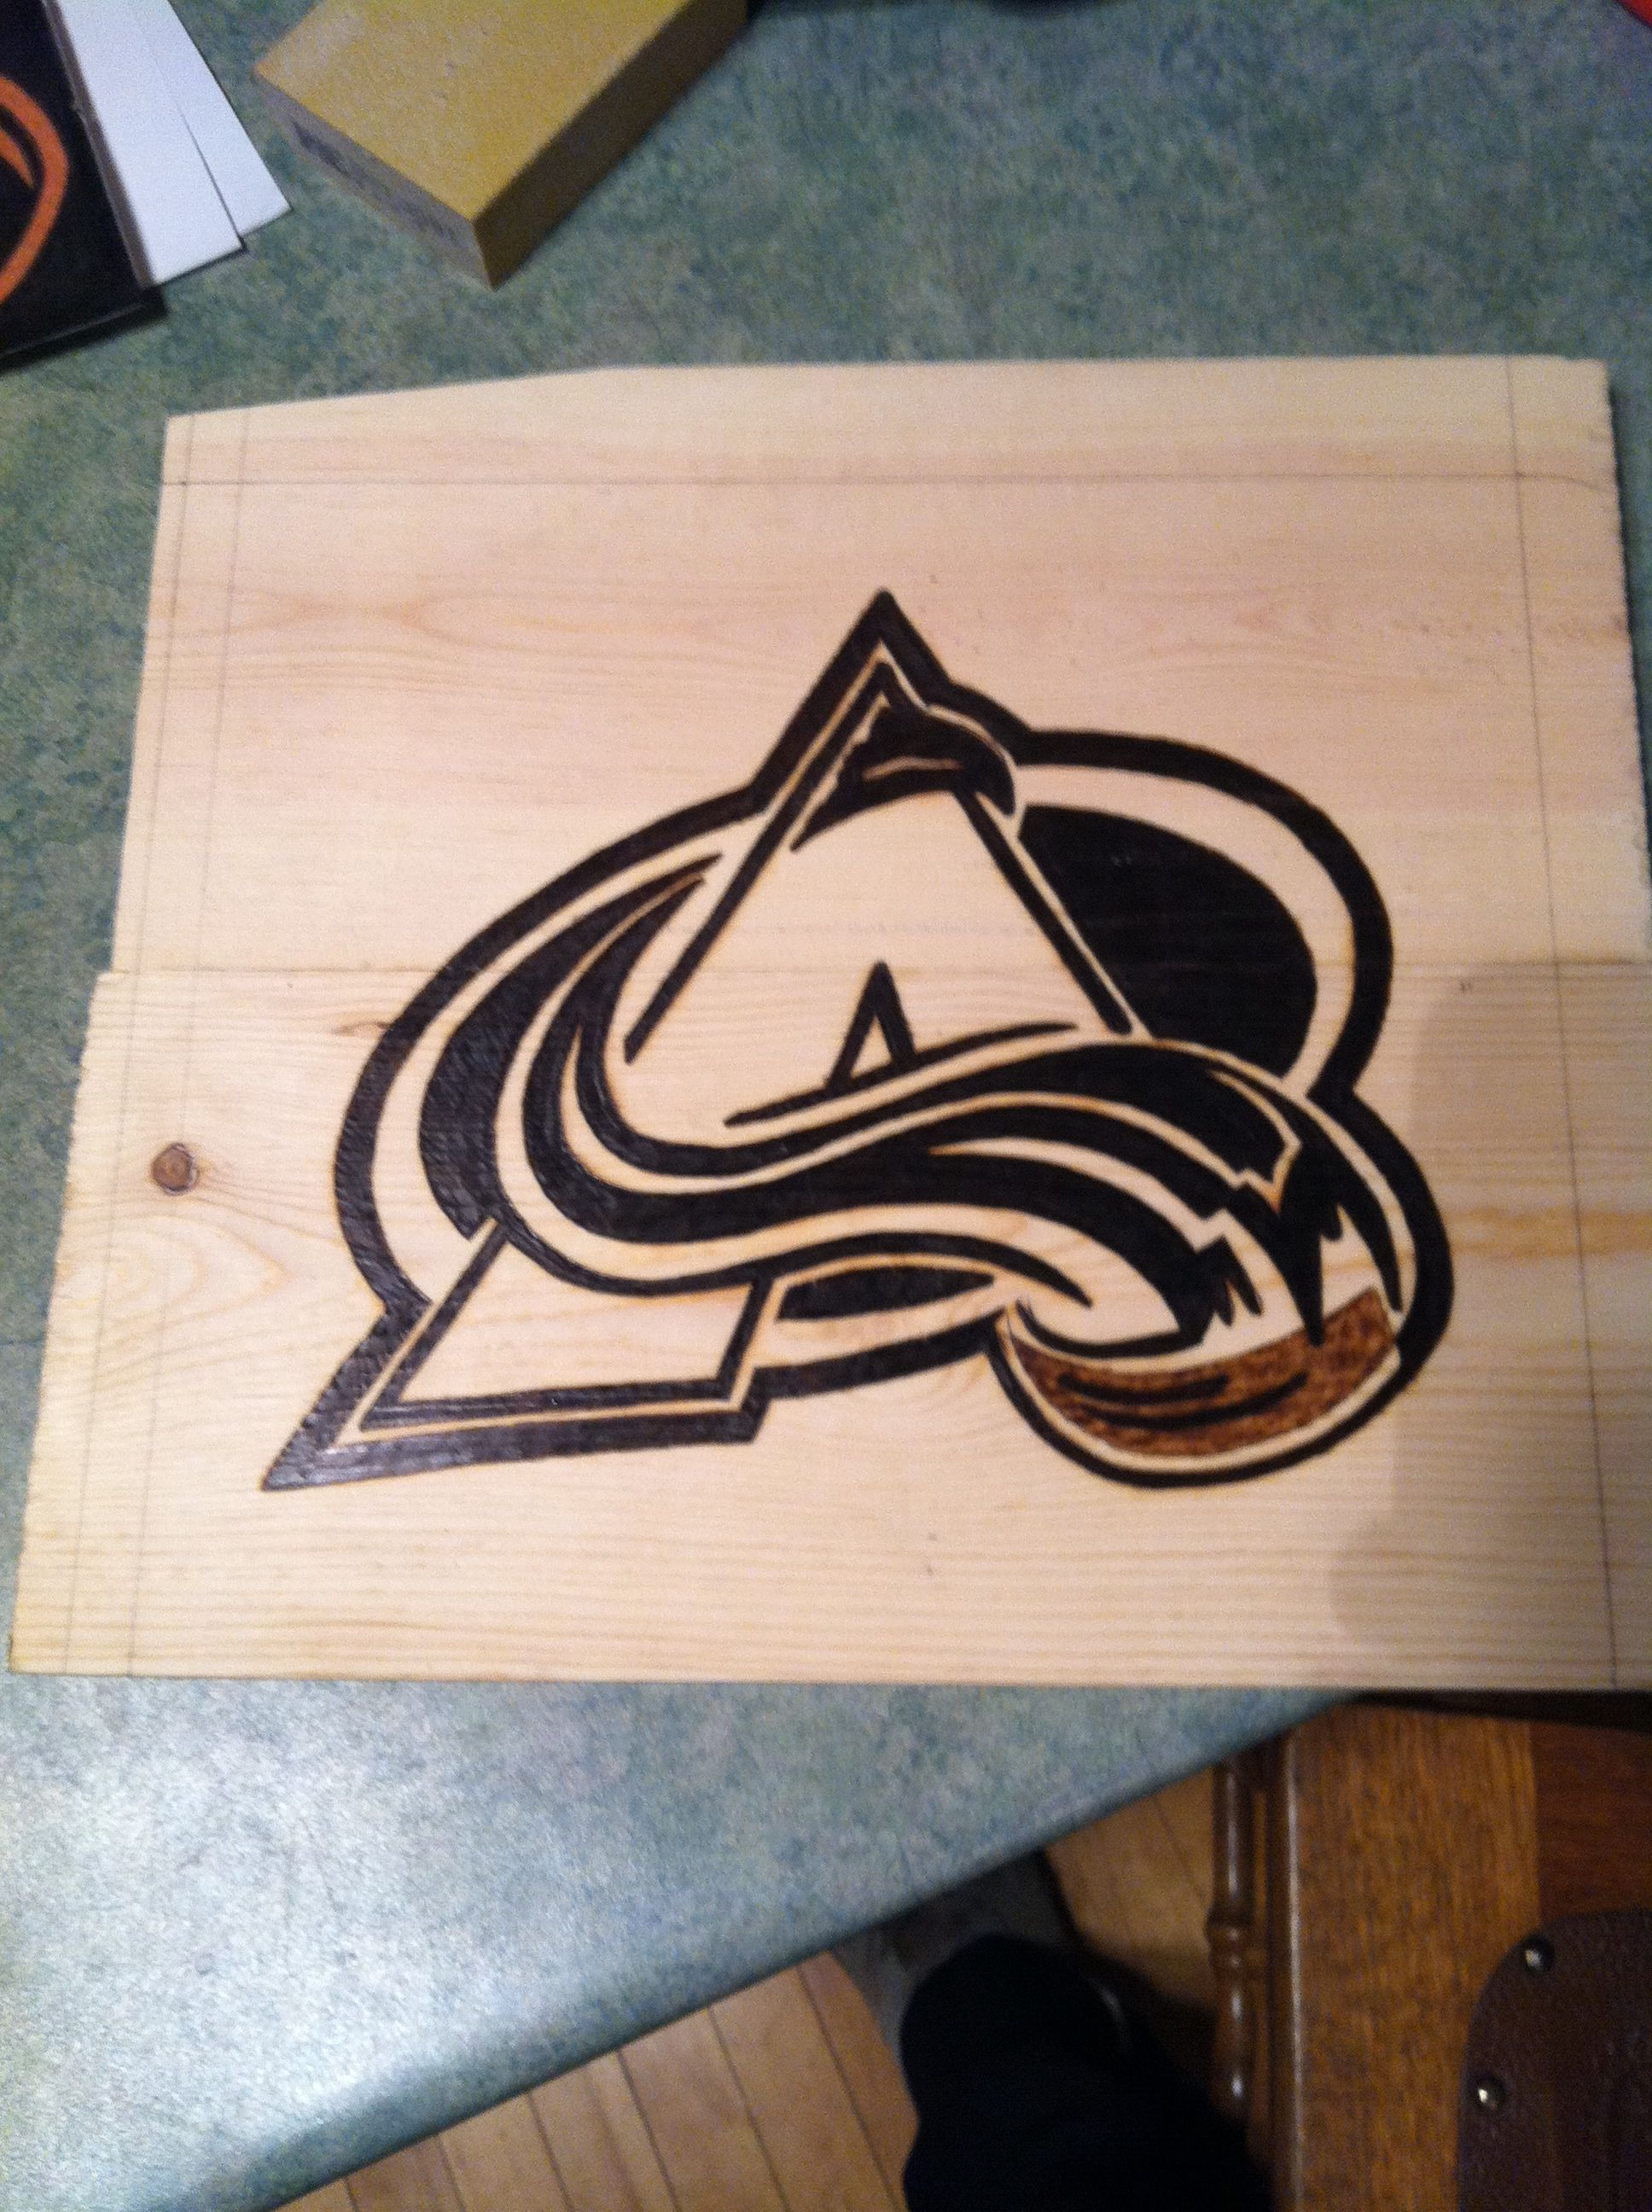 Colorado Avalanche wood burned logo (With images) Brand